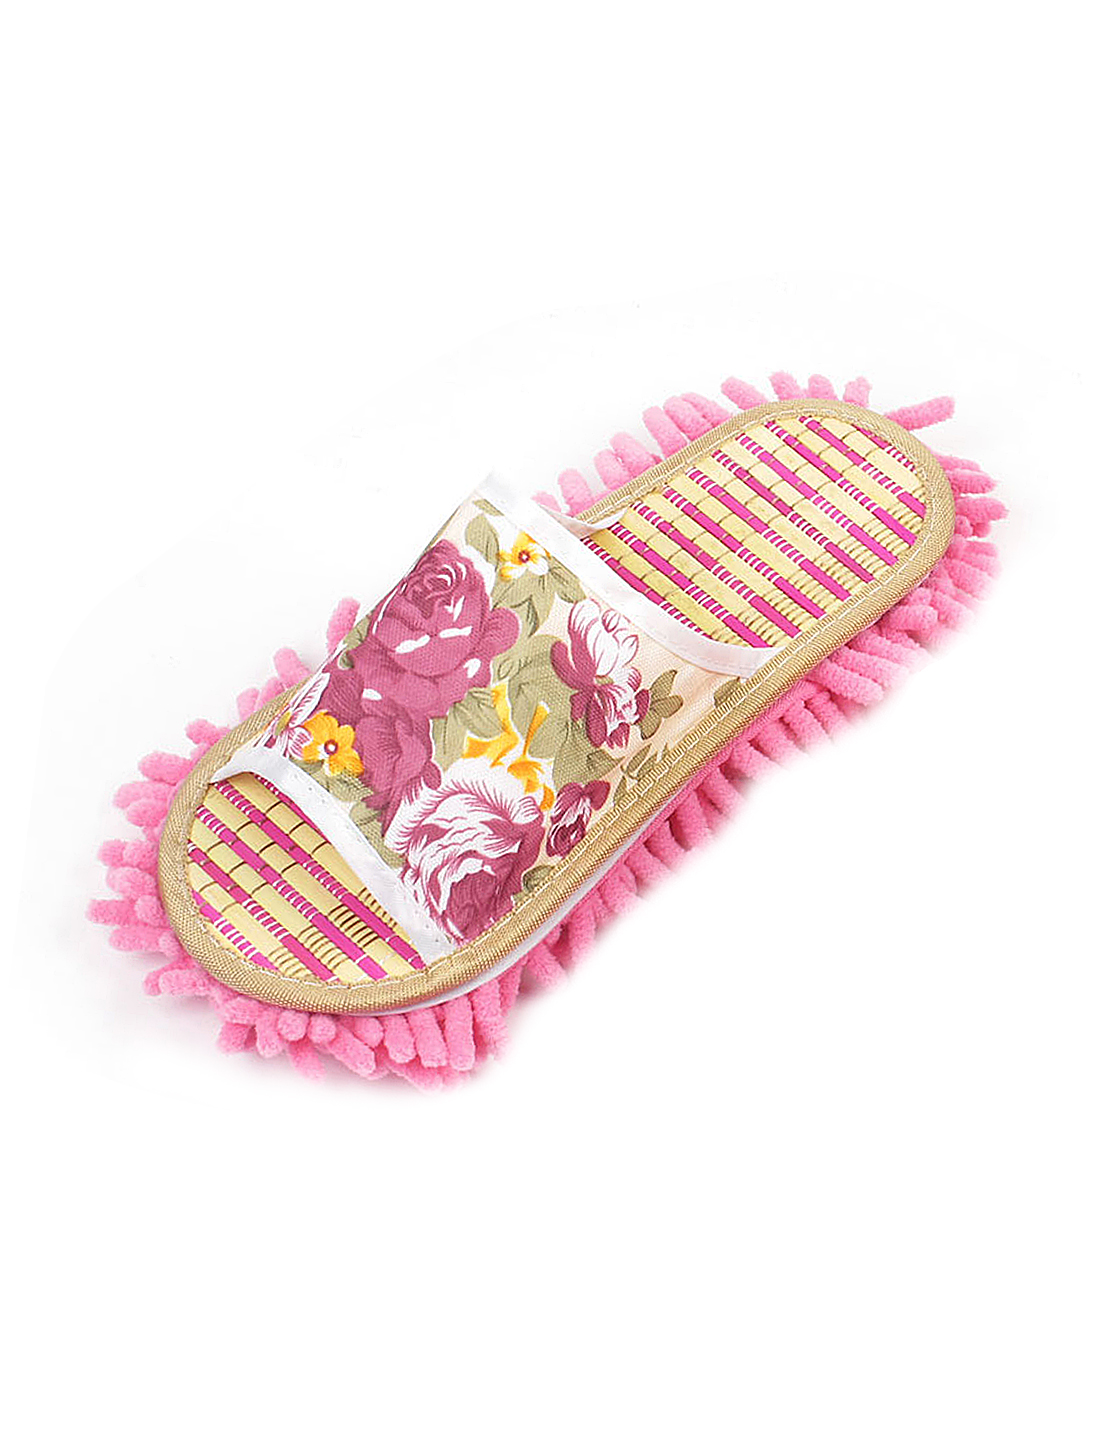 Ladies Floral Leaves Pattern Open Toe Type Wipe Floor Mop Slippers US 7